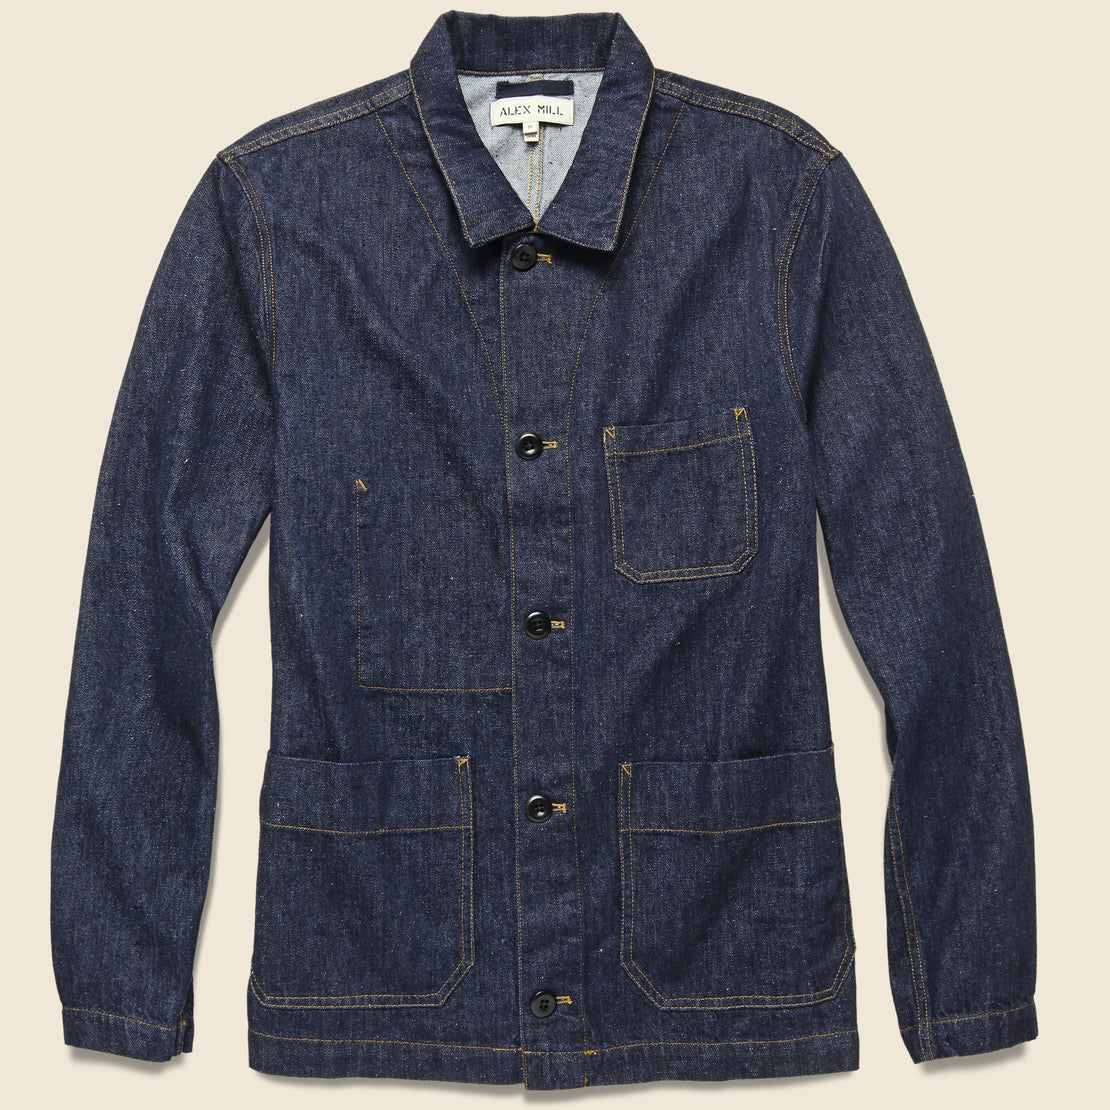 Alex Mill Nepped Denim Shirt Jacket - Rinse